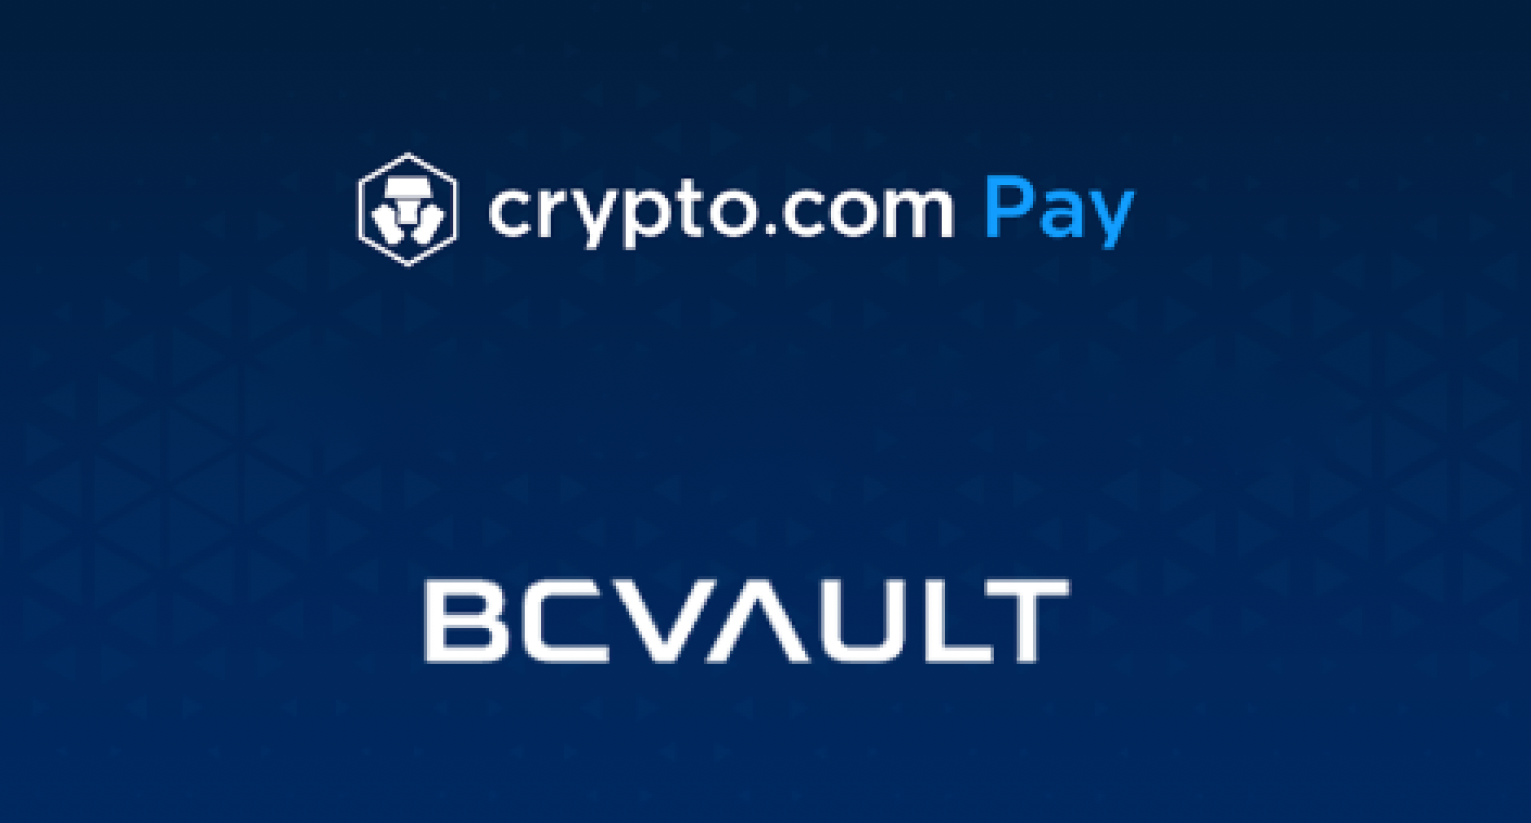 Stay tuned for an awesome promo campaign with Crypto.com